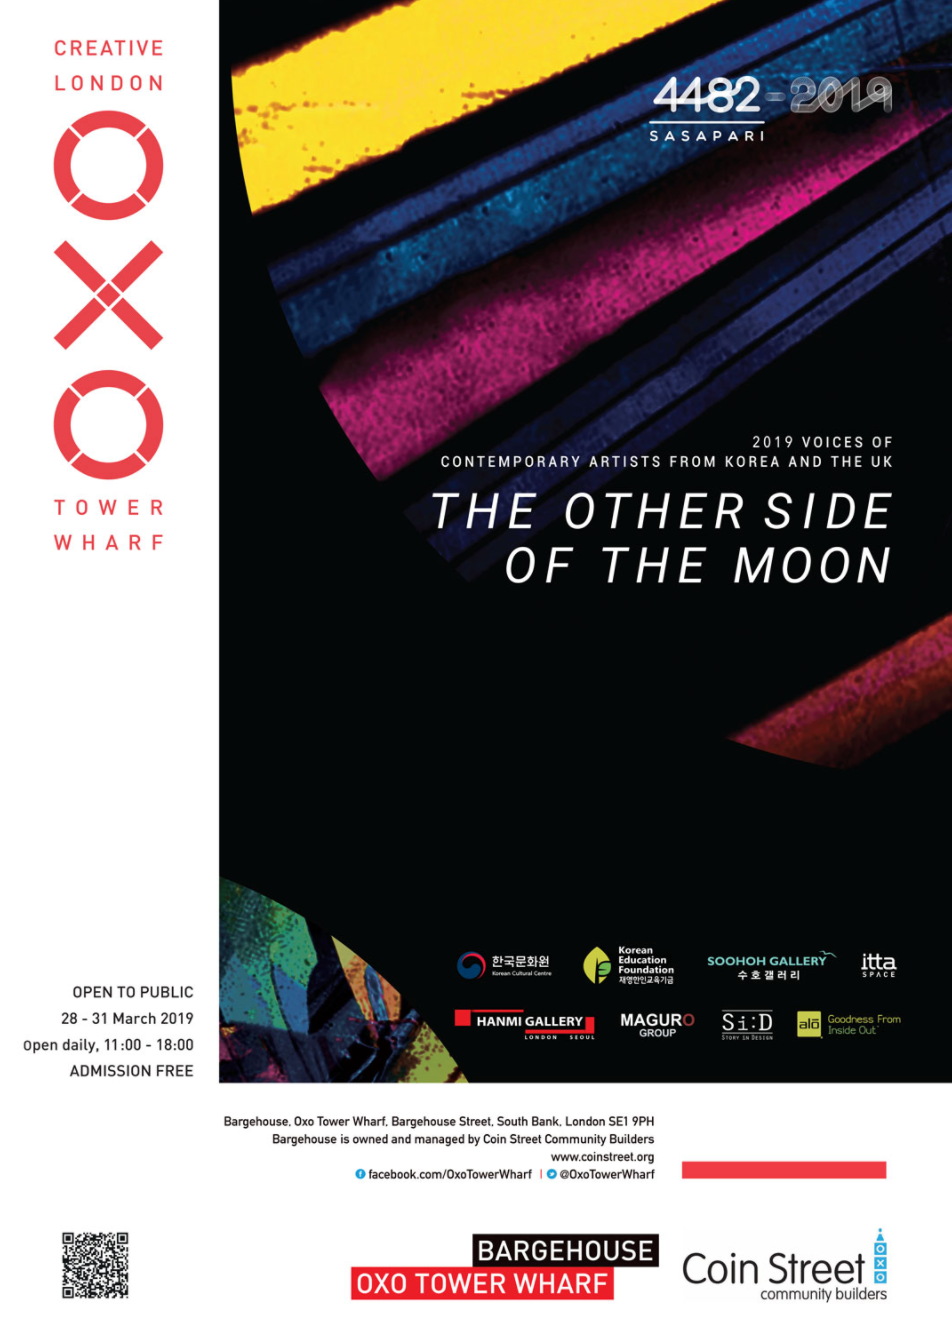 4482-2019: The Other Side of the Moon, Oxo tower, London, 2019